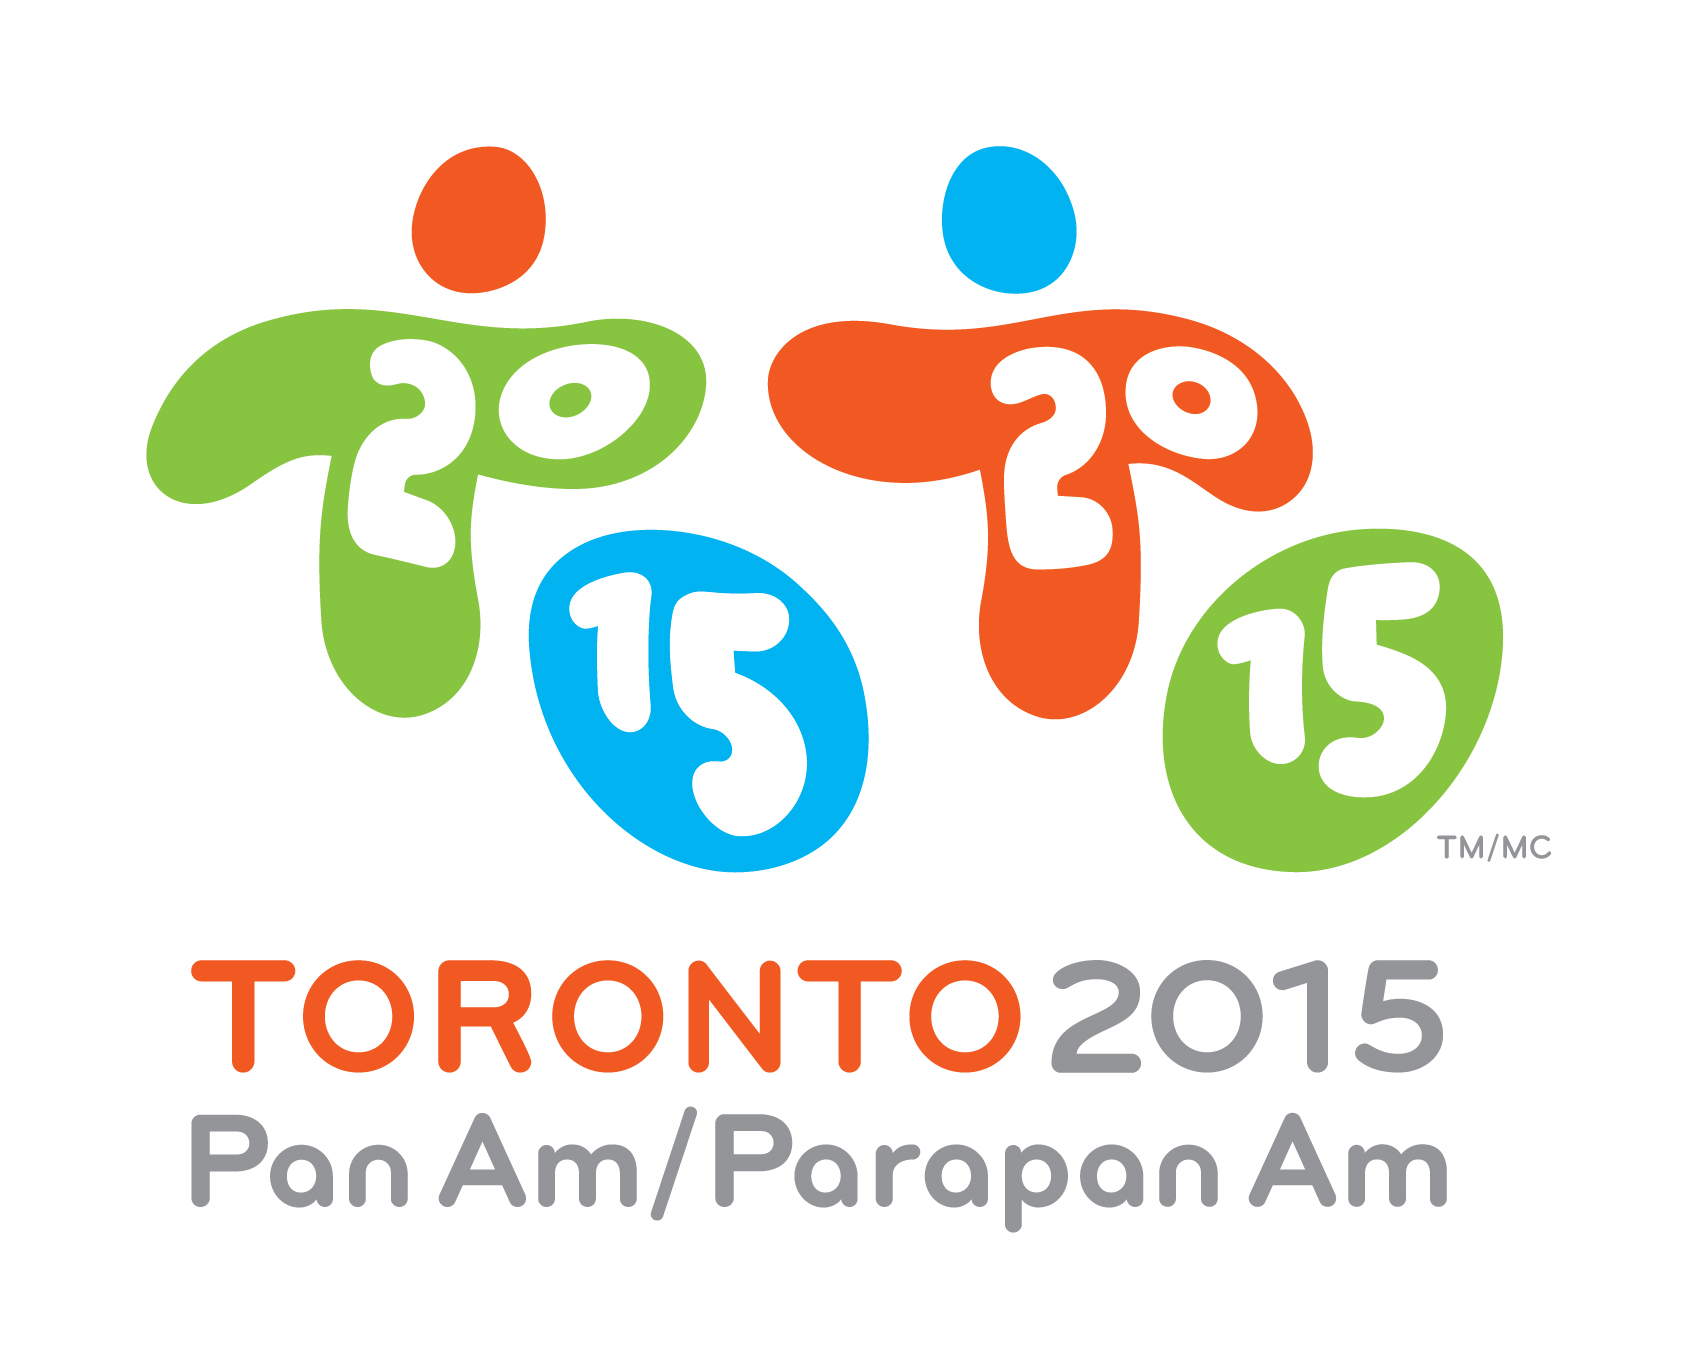 Toronto 2015 Pan Am/Parapan Am Games logo